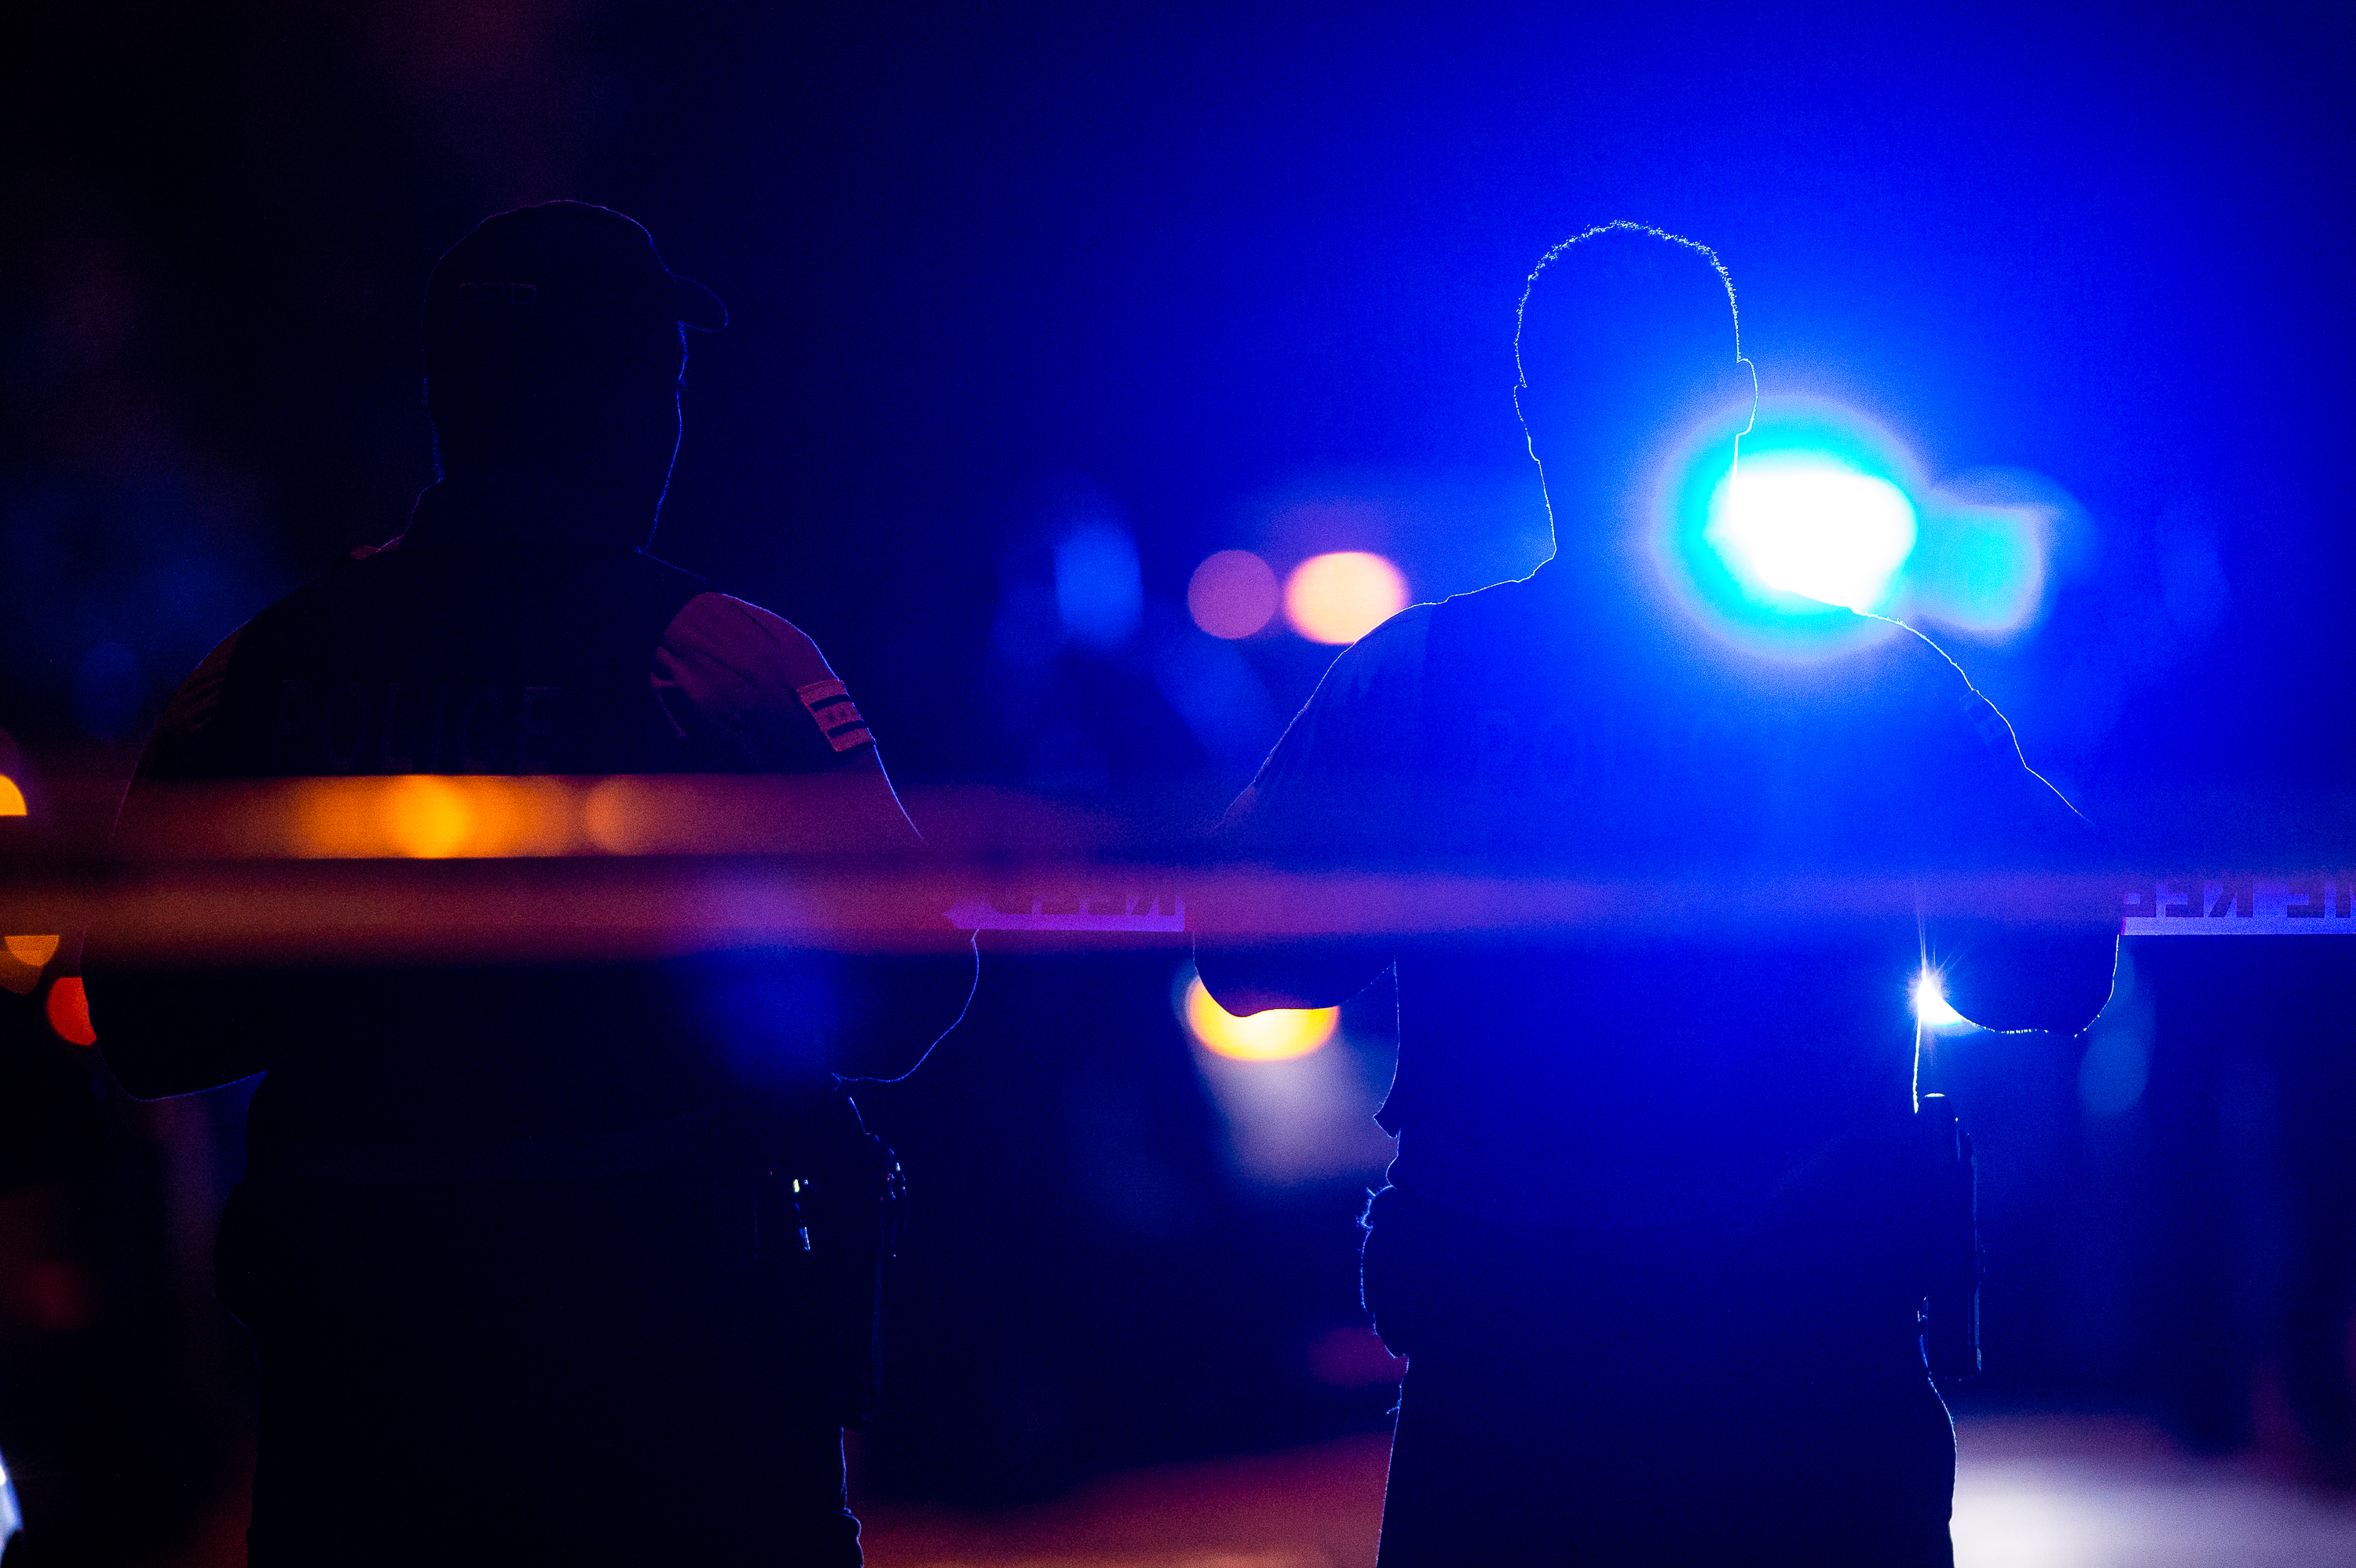 A woman was shot in Englewood